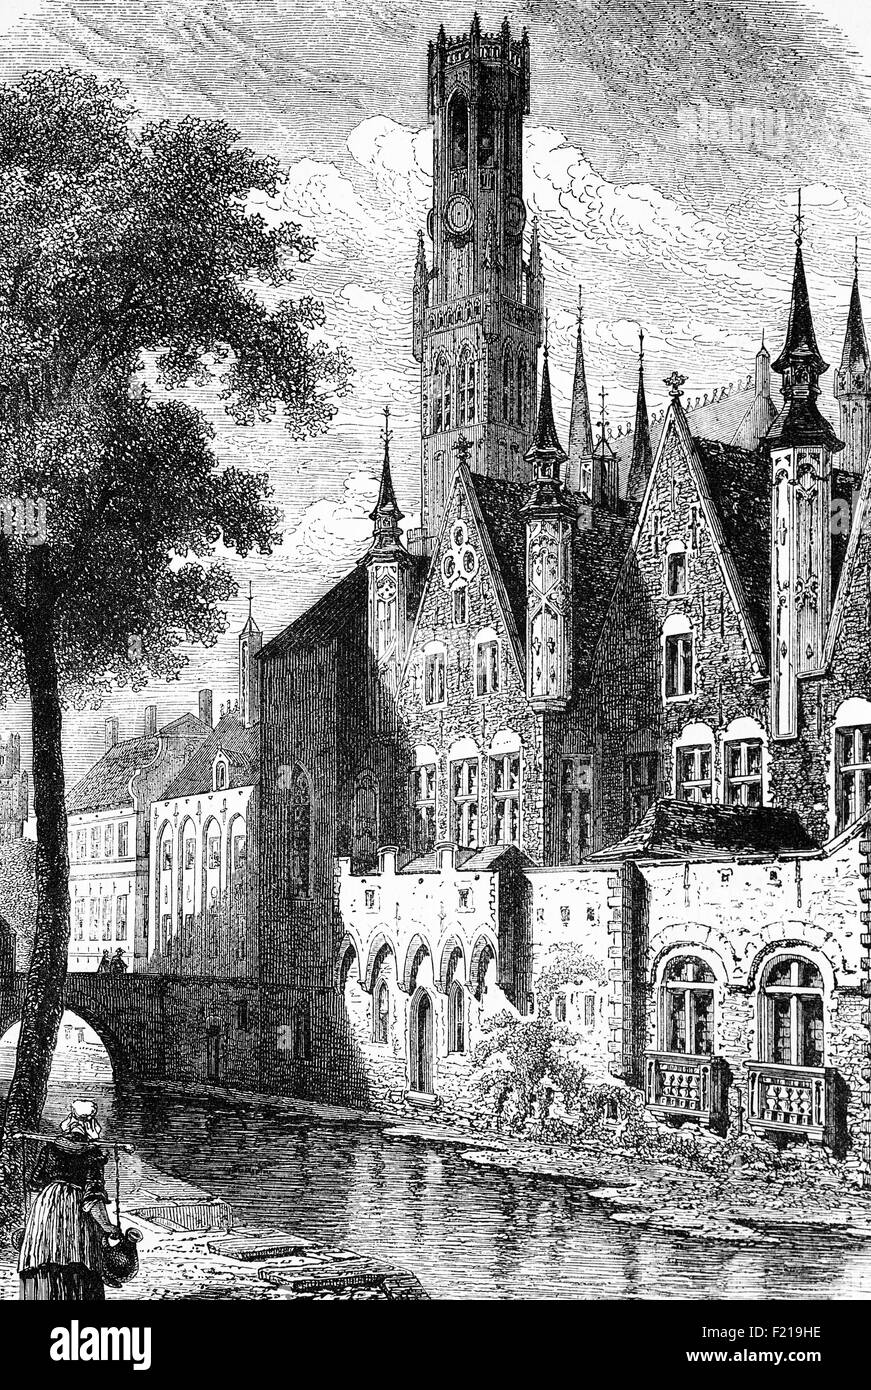 The Palace of the Franks in Bruges, Capital and largest city of the province of West Flanders in the Flemish Region - Stock Image